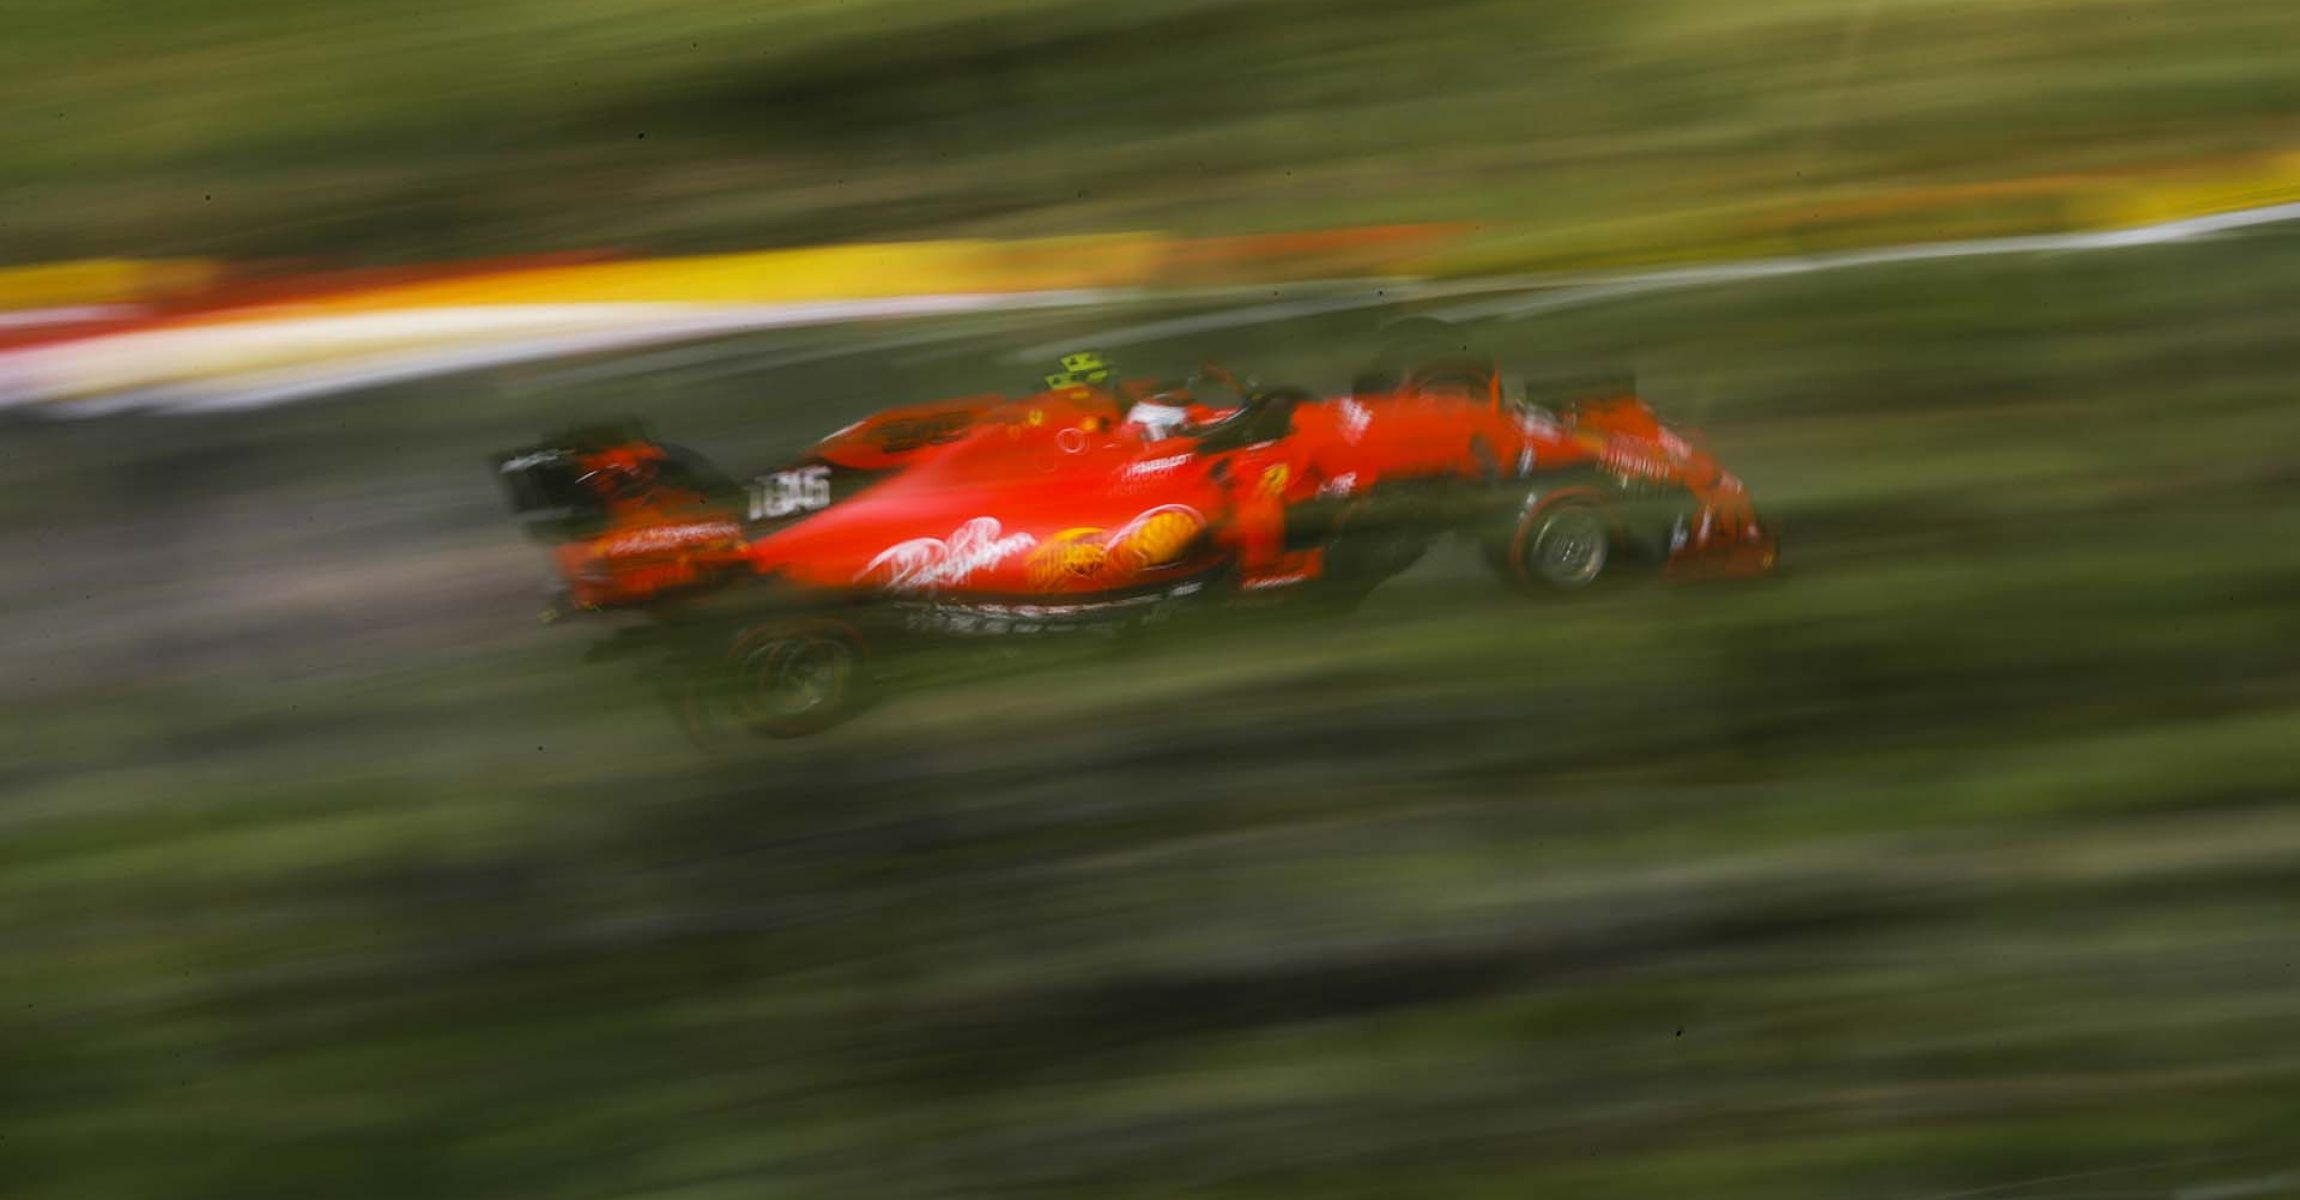 SPA-FRANCORCHAMPS, BELGIUM - AUGUST 31: Charles Leclerc, Ferrari SF90 during the Belgian GP at Spa-Francorchamps on August 31, 2019 in Spa-Francorchamps, Belgium. (Photo by Steven Tee / LAT Images)